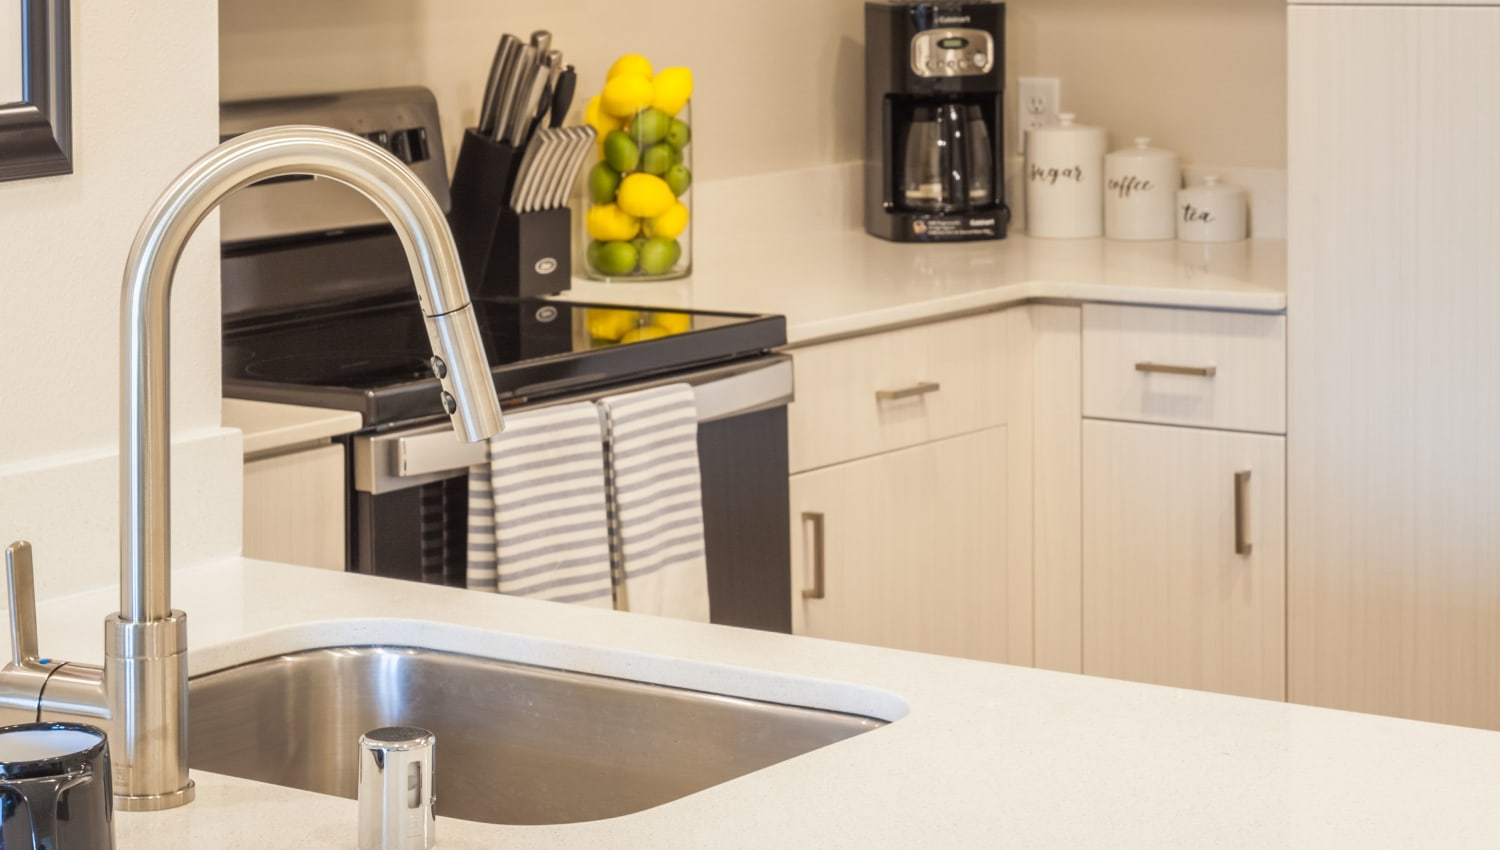 Stainless-steel sink at Capitol Flats in Santa Fe, New Mexico